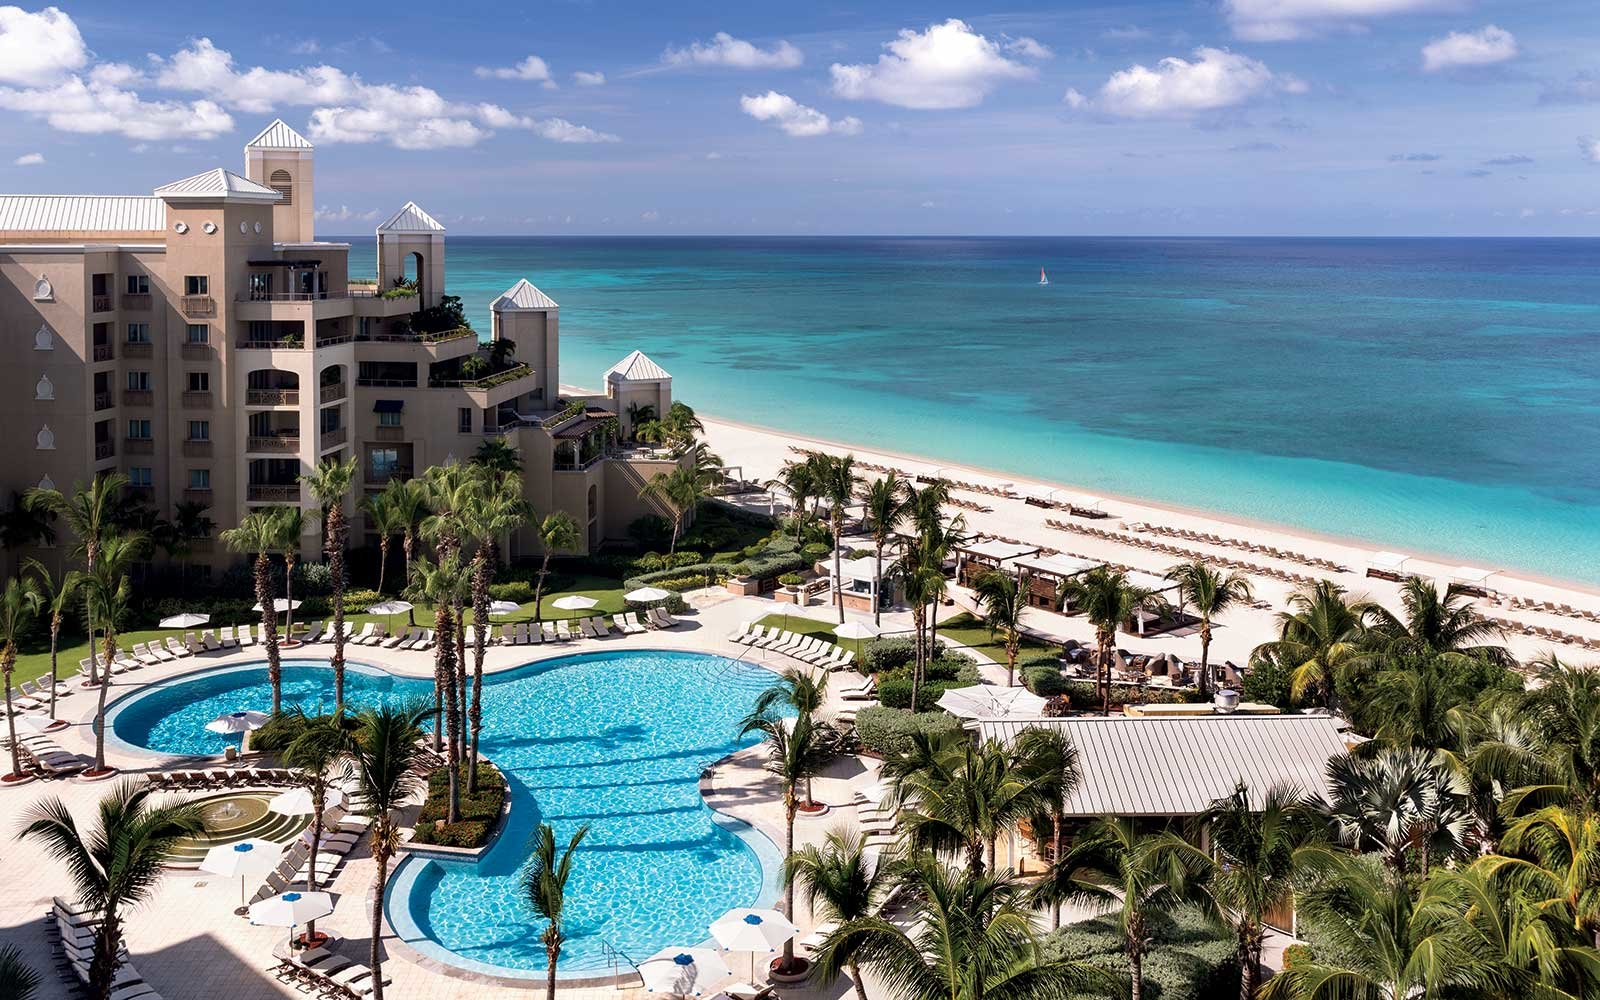 HERO_the-ritz-carlton-grand-cayman-XMASXCAPE1115.jpg